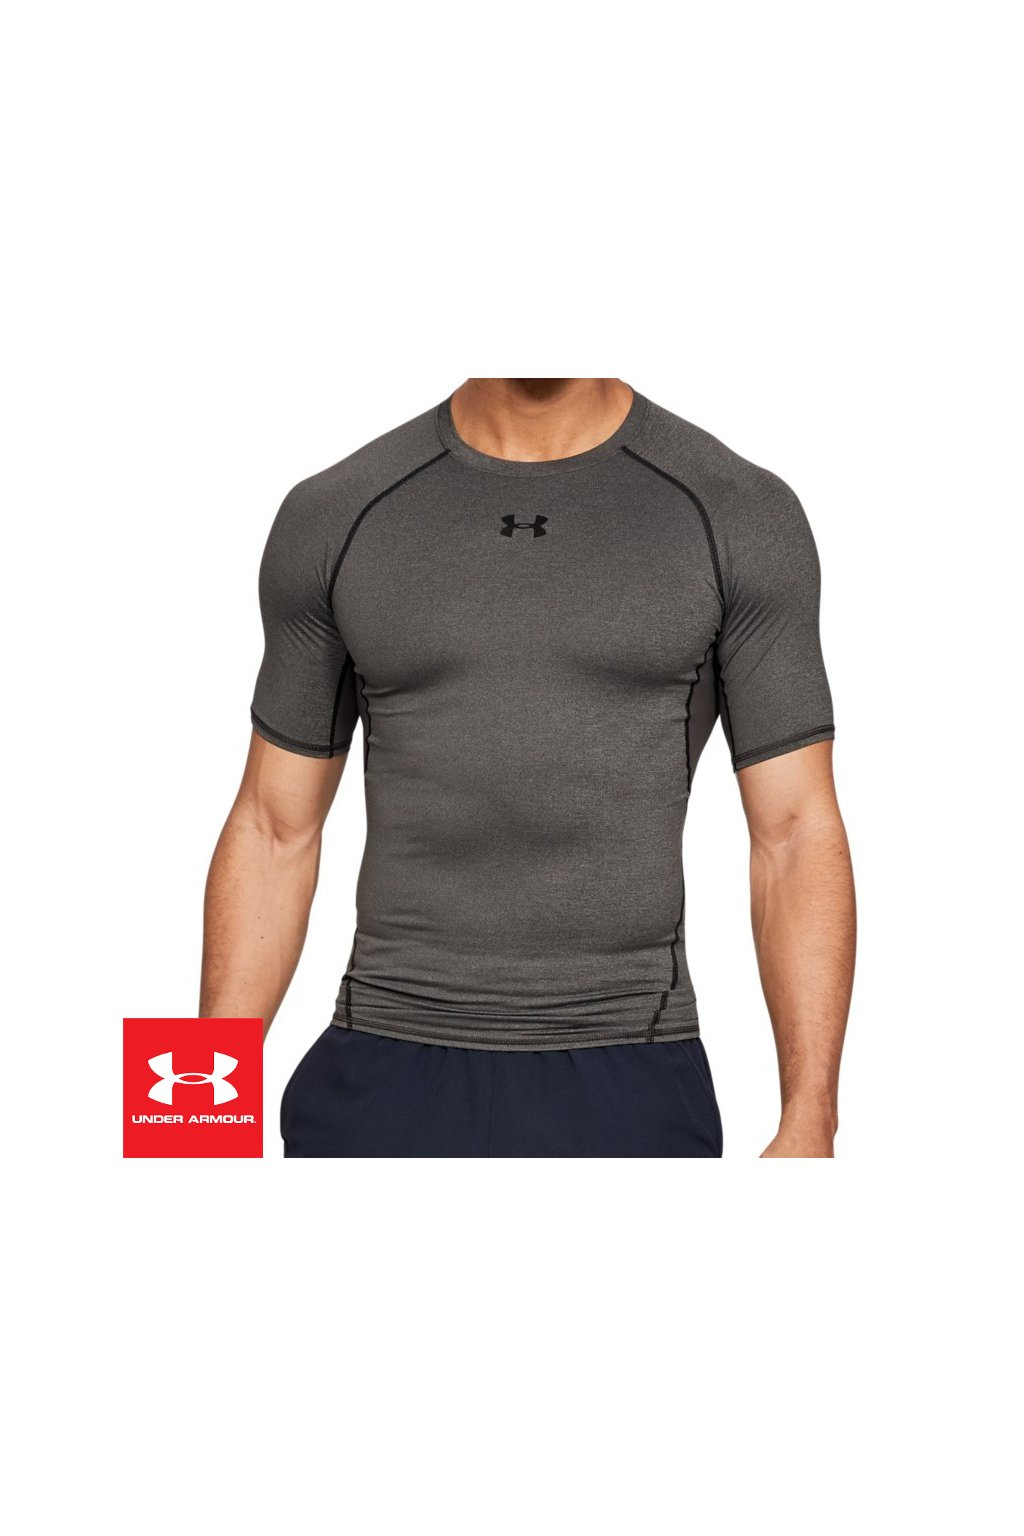 1257468 ferfi kompresszios polo under armour